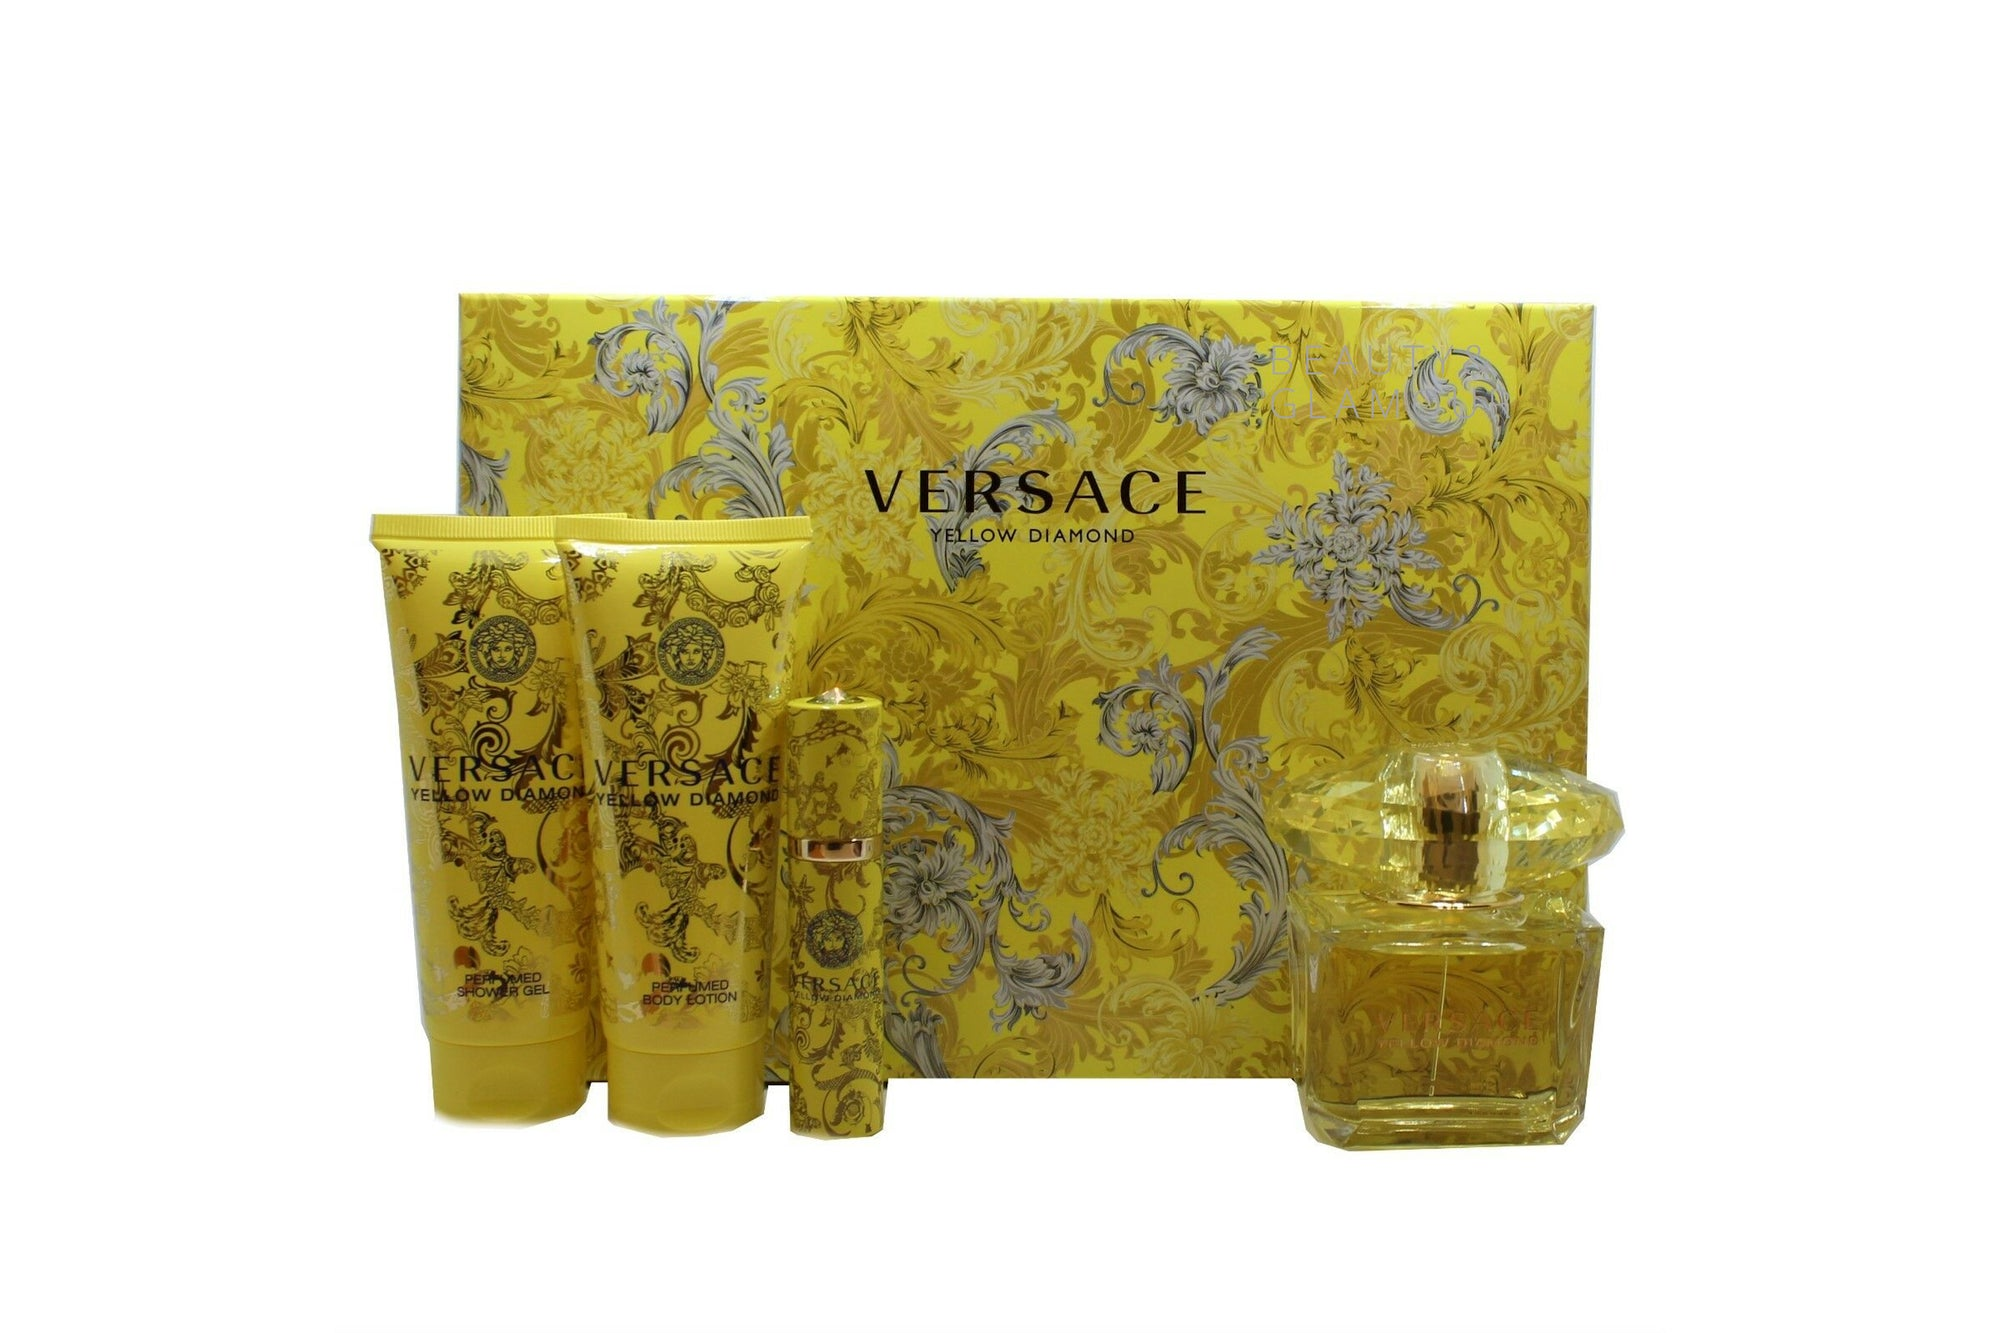 VERSACE YELLOW DIAMOND EAU DE TOILETTE NATURAL SPRAY 90 ML/3 FL.OZ.